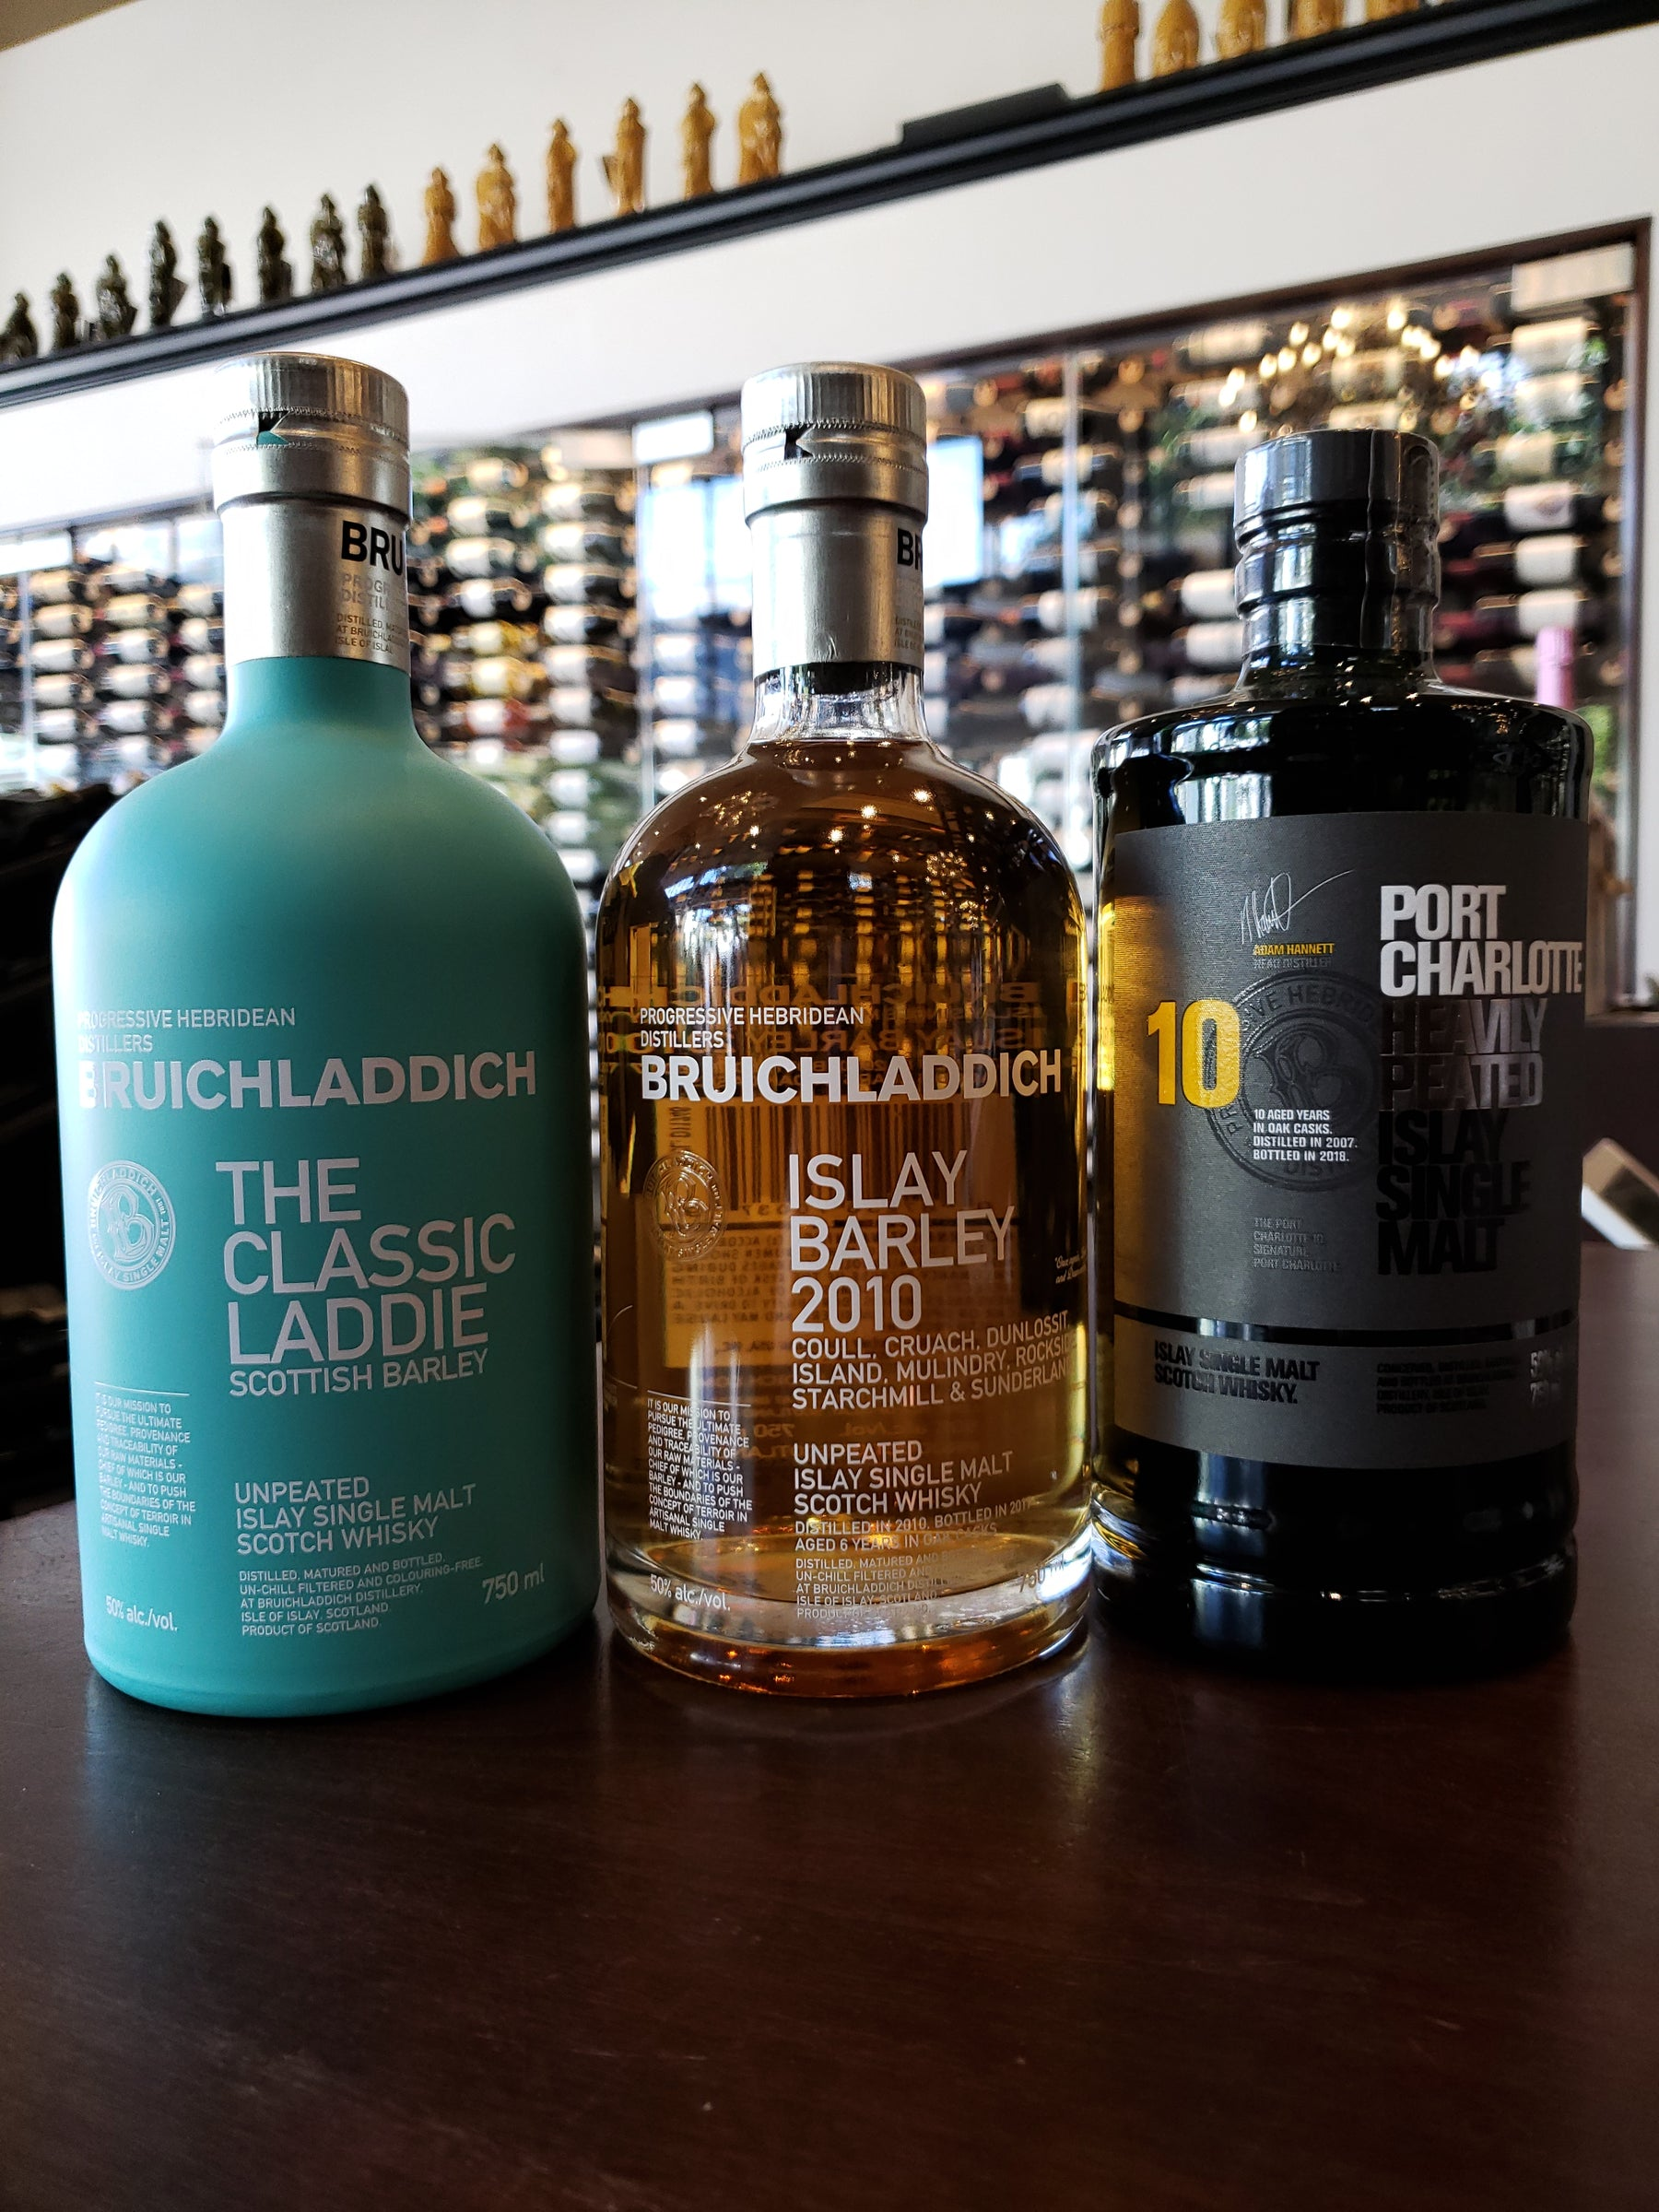 Bruichladdich Distillery | Free Tasting Friday, May 31st 5-7pm